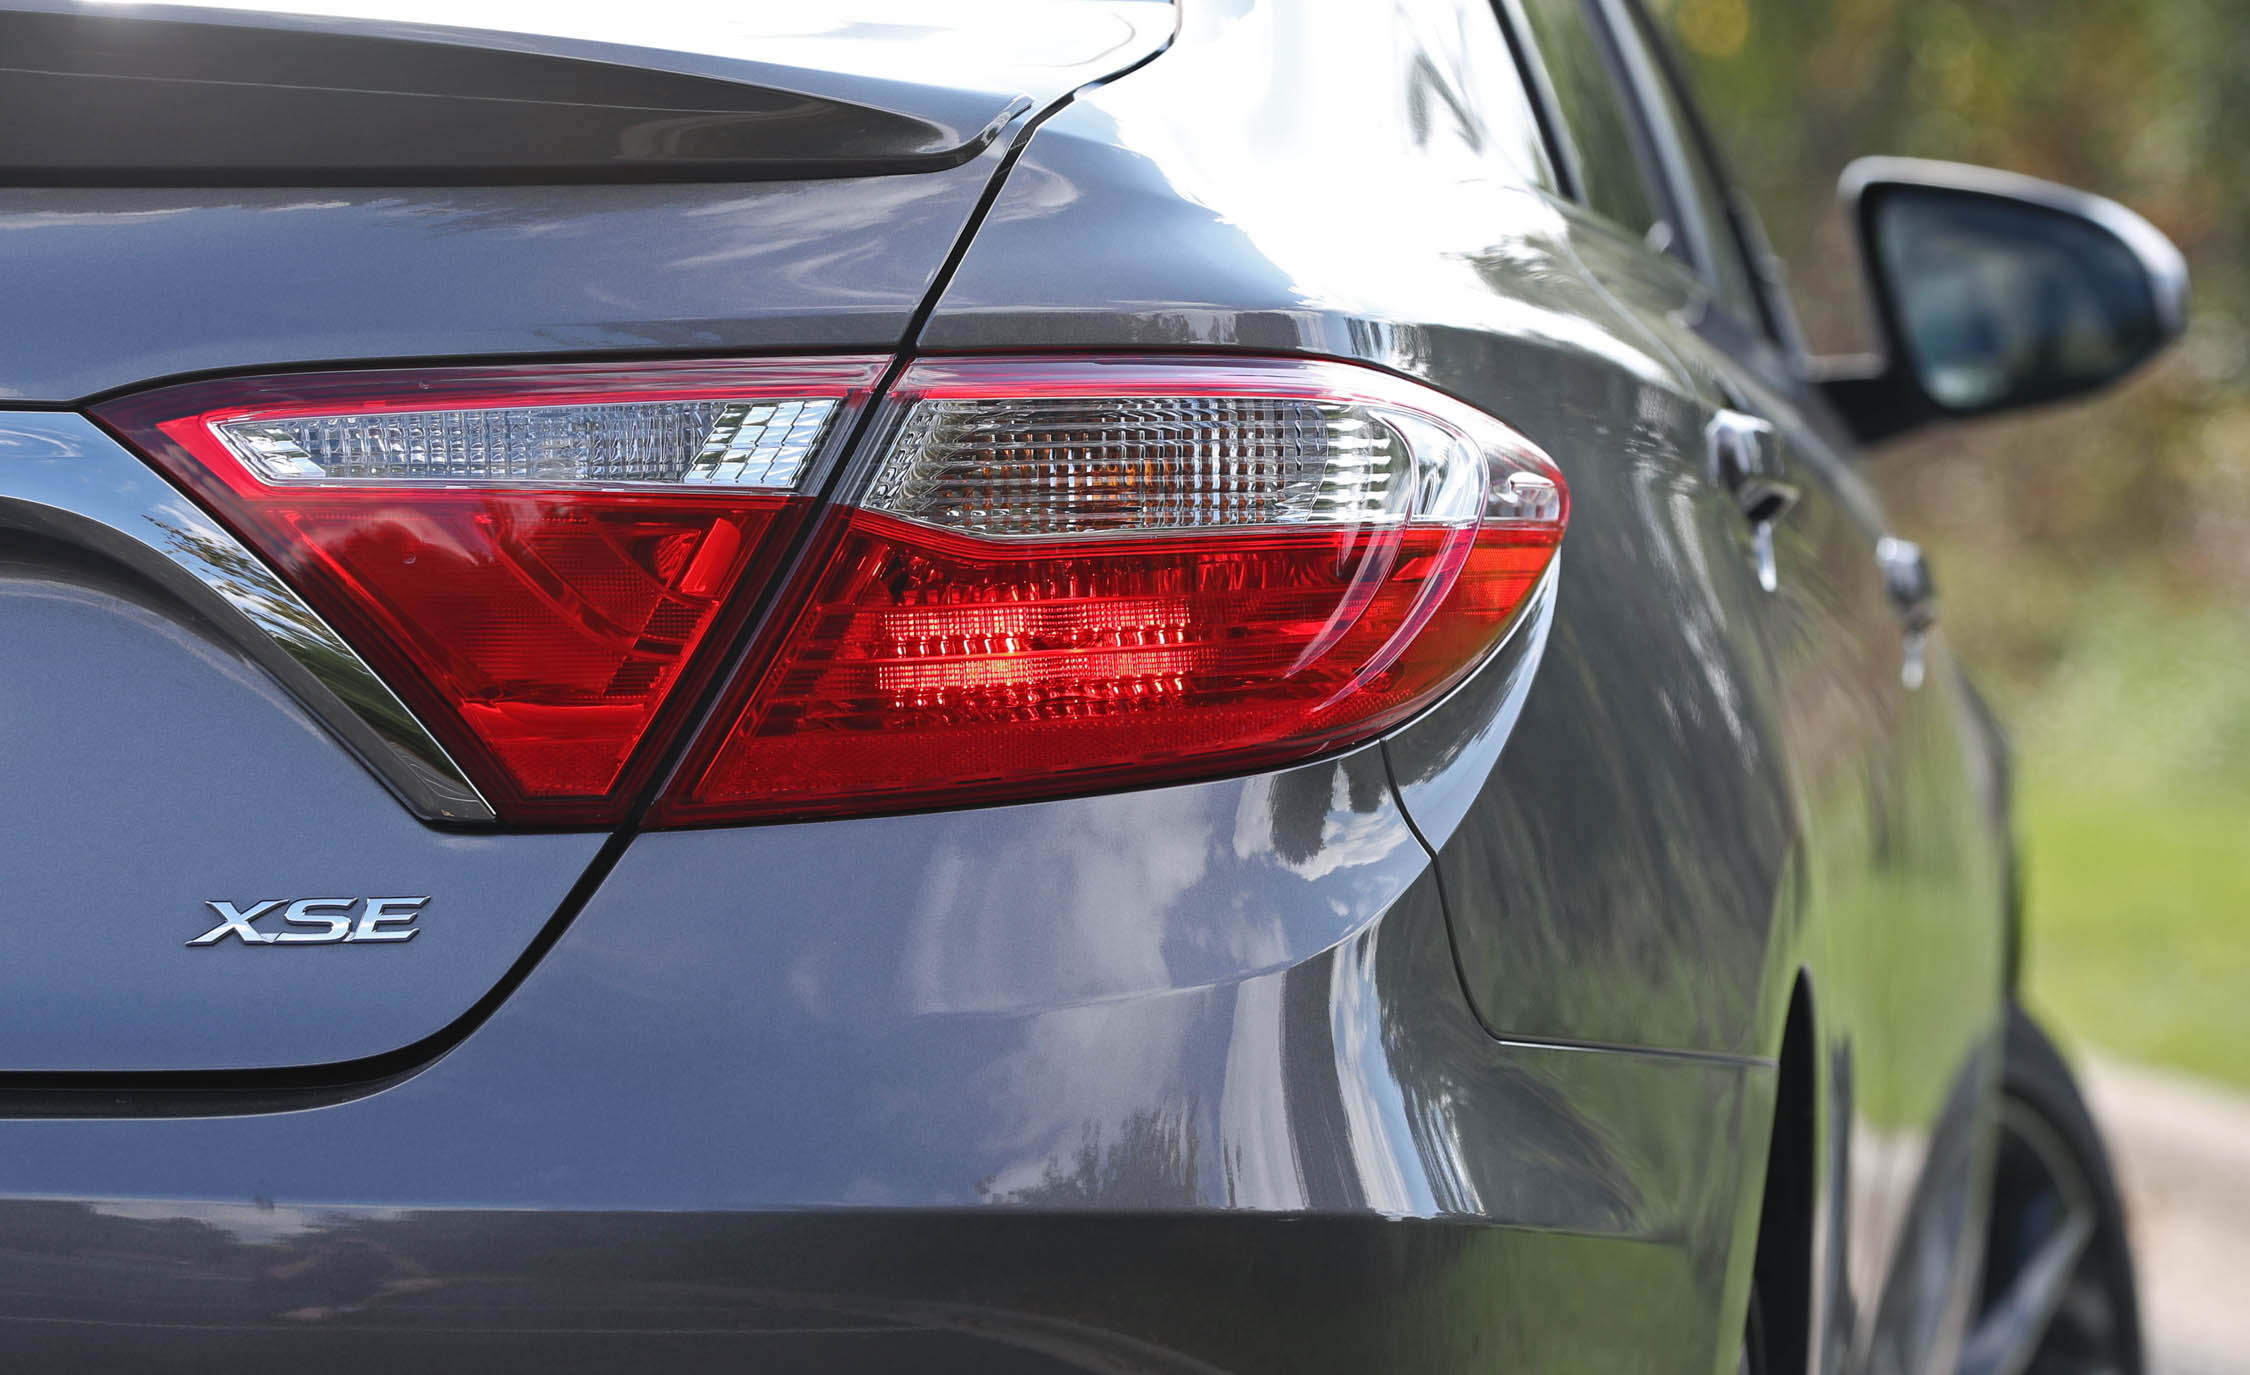 2017 Toyota Camry Exterior View Taillight (View 22 of 37)